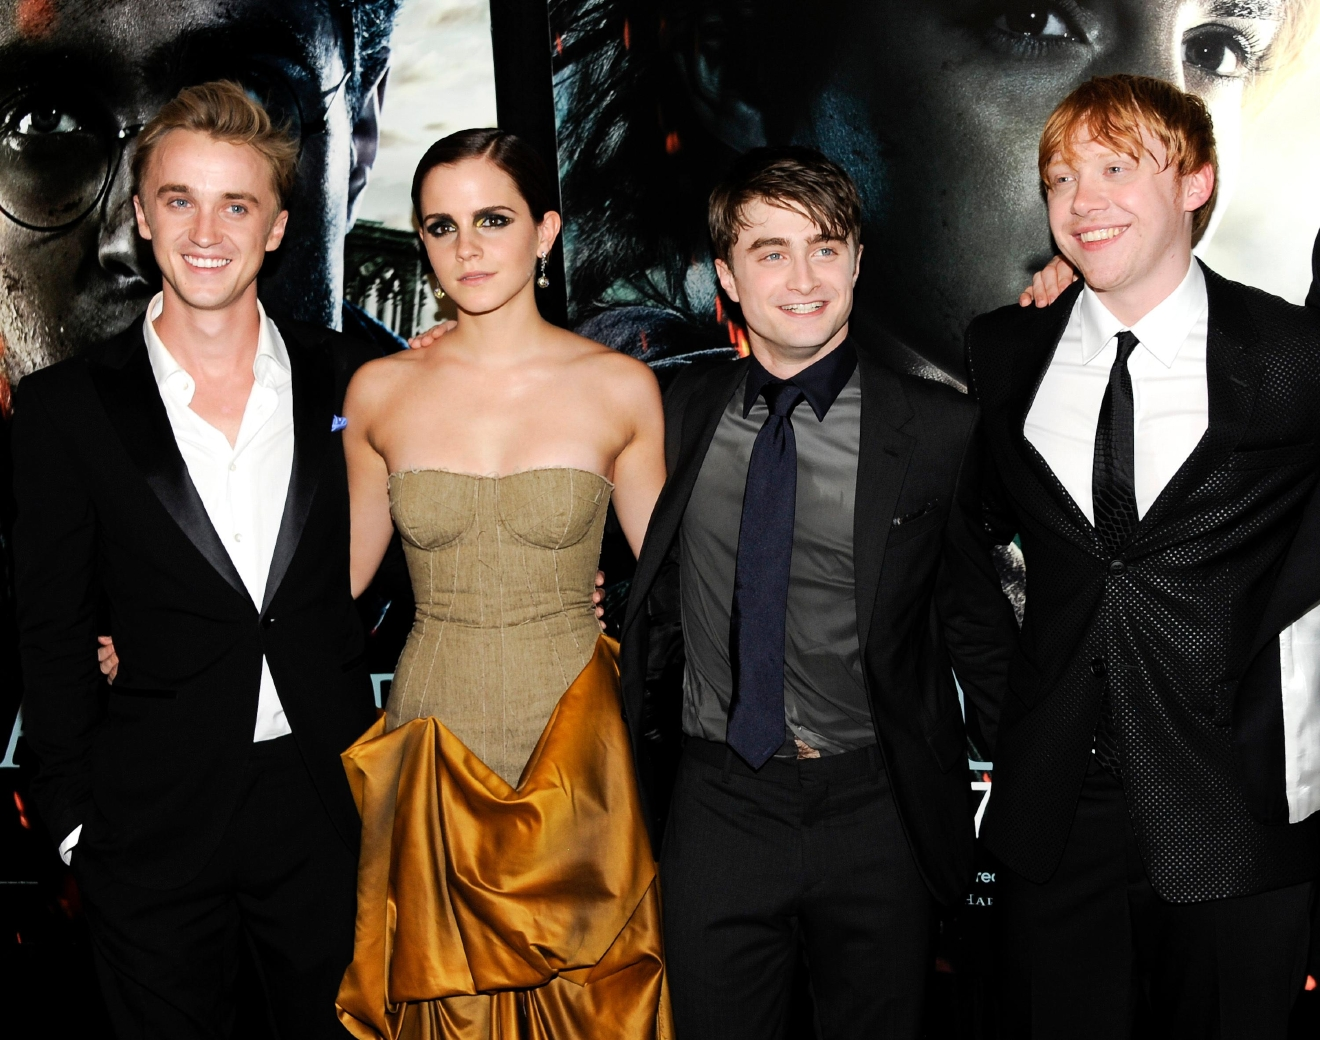 "FILE - In this July 11, 2011 file photo, cast members, from left, Tom Felton, Emma Watson, Daniel Radcliffe and Rupert Grint pose together at the premiere of ""Harry Potter and the Deathly Hallows: Part 2"" at Avery Fisher Hall in New York. (AP Photo/Evan Agostini, File)"